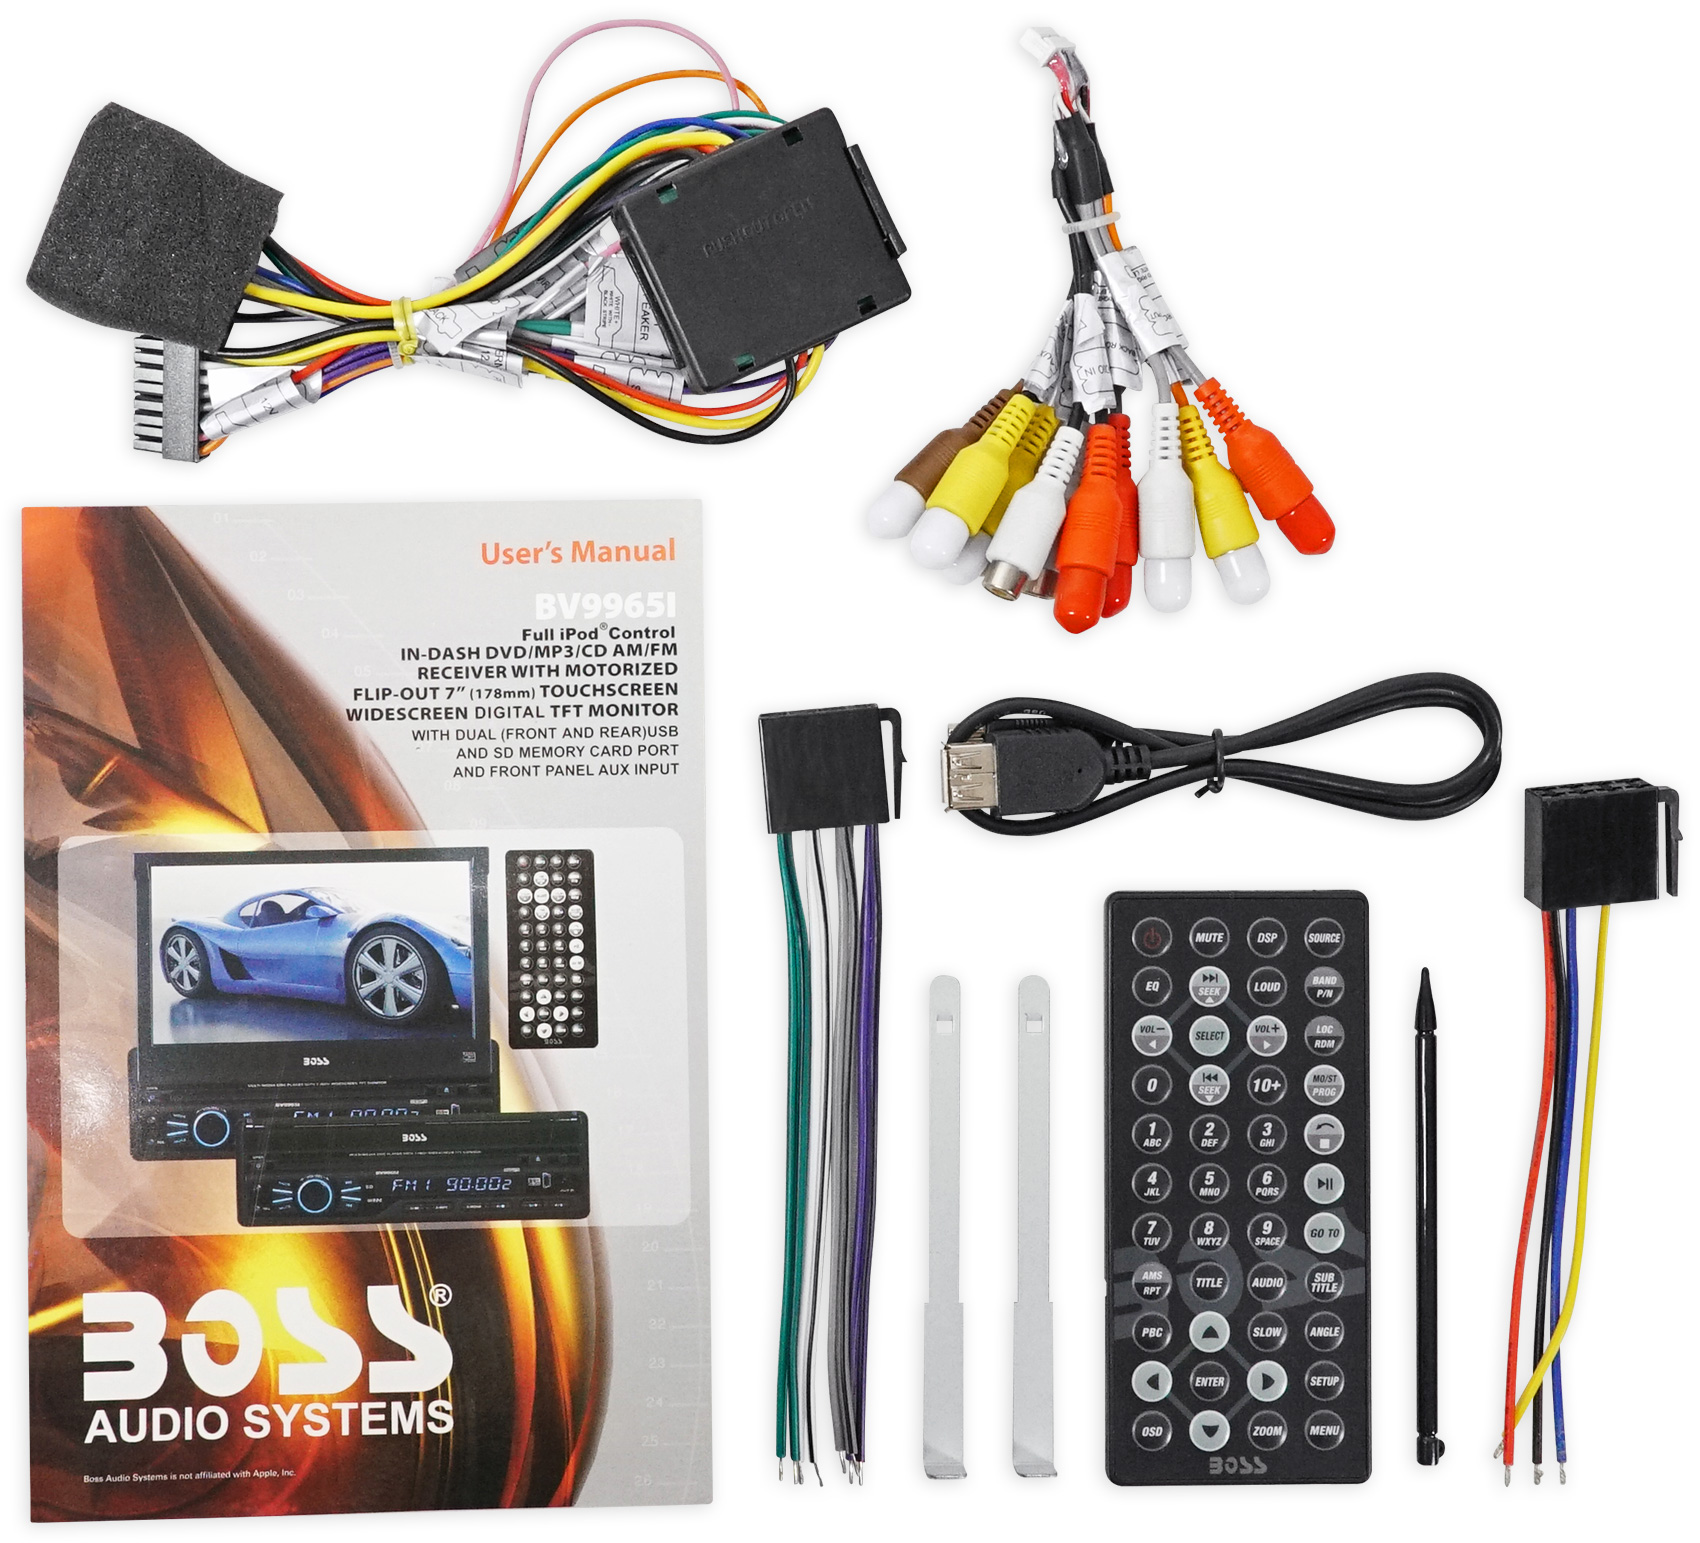 Boss Bv9965i Wiring Harness Simple Diagram Detailed V Plow 1 Din 7 In Dash Monitor Dvd Cd Am Fm Receiverusbsd Snow Installation